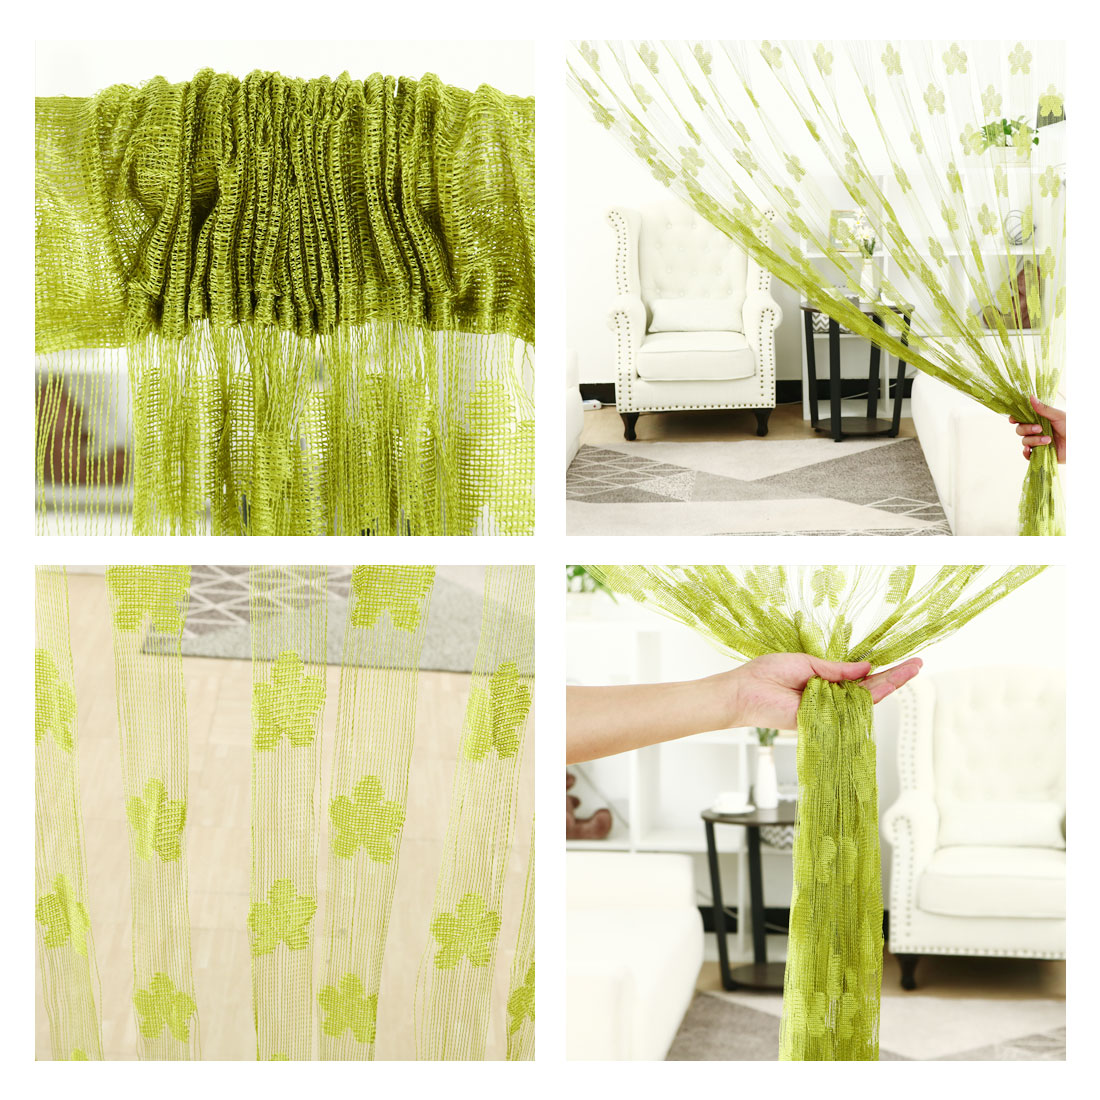 "String Curtain Fringe Panel 39"" x 79""(W*H) Decor Room Door Divider Yellow Green - image 3 of 6"